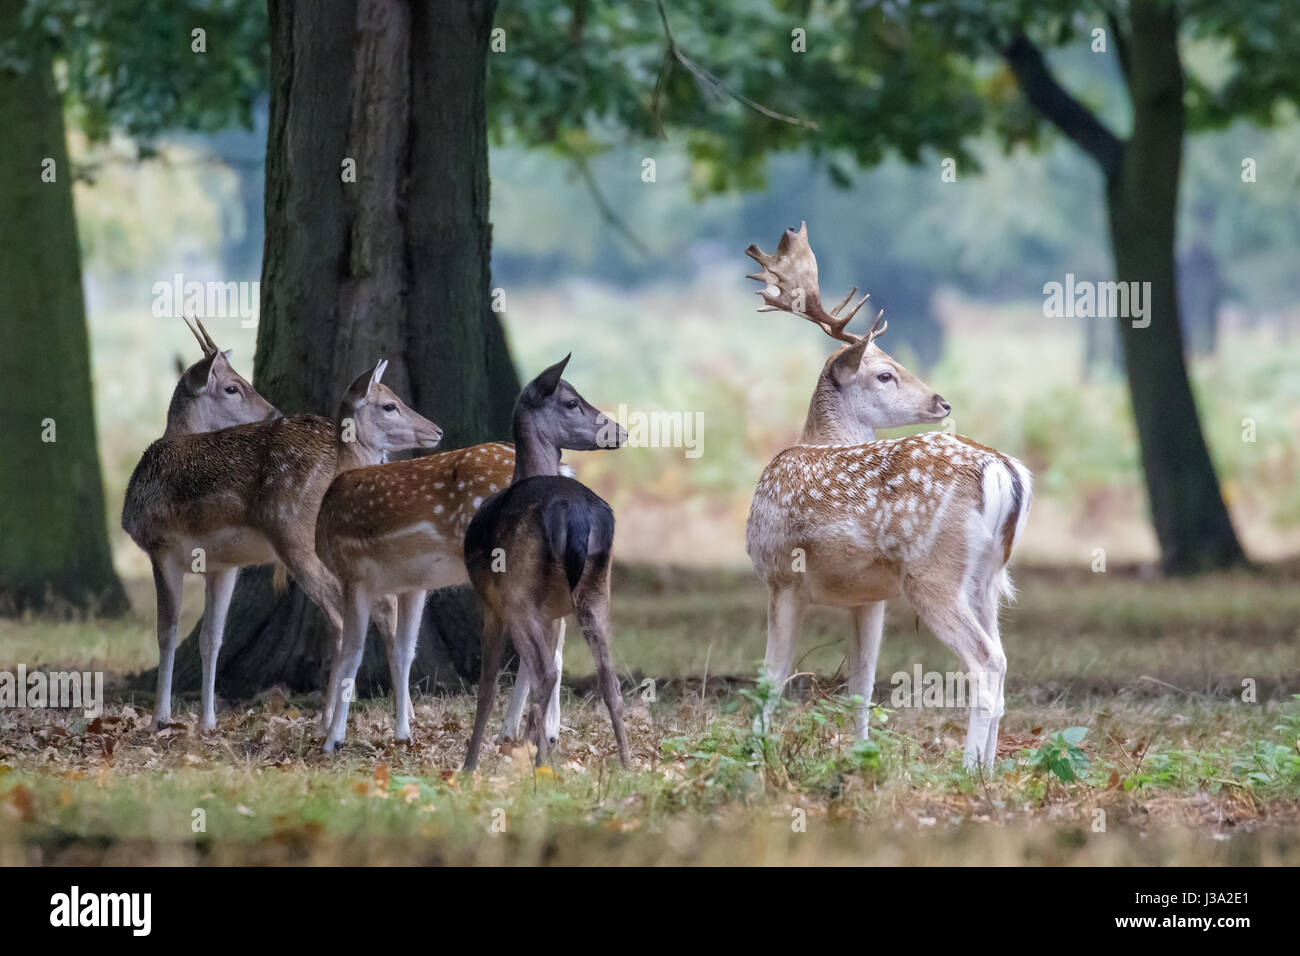 Group of four Fallow deer (Dama dama) startled by something on the edge of woodland copse - Stock Image